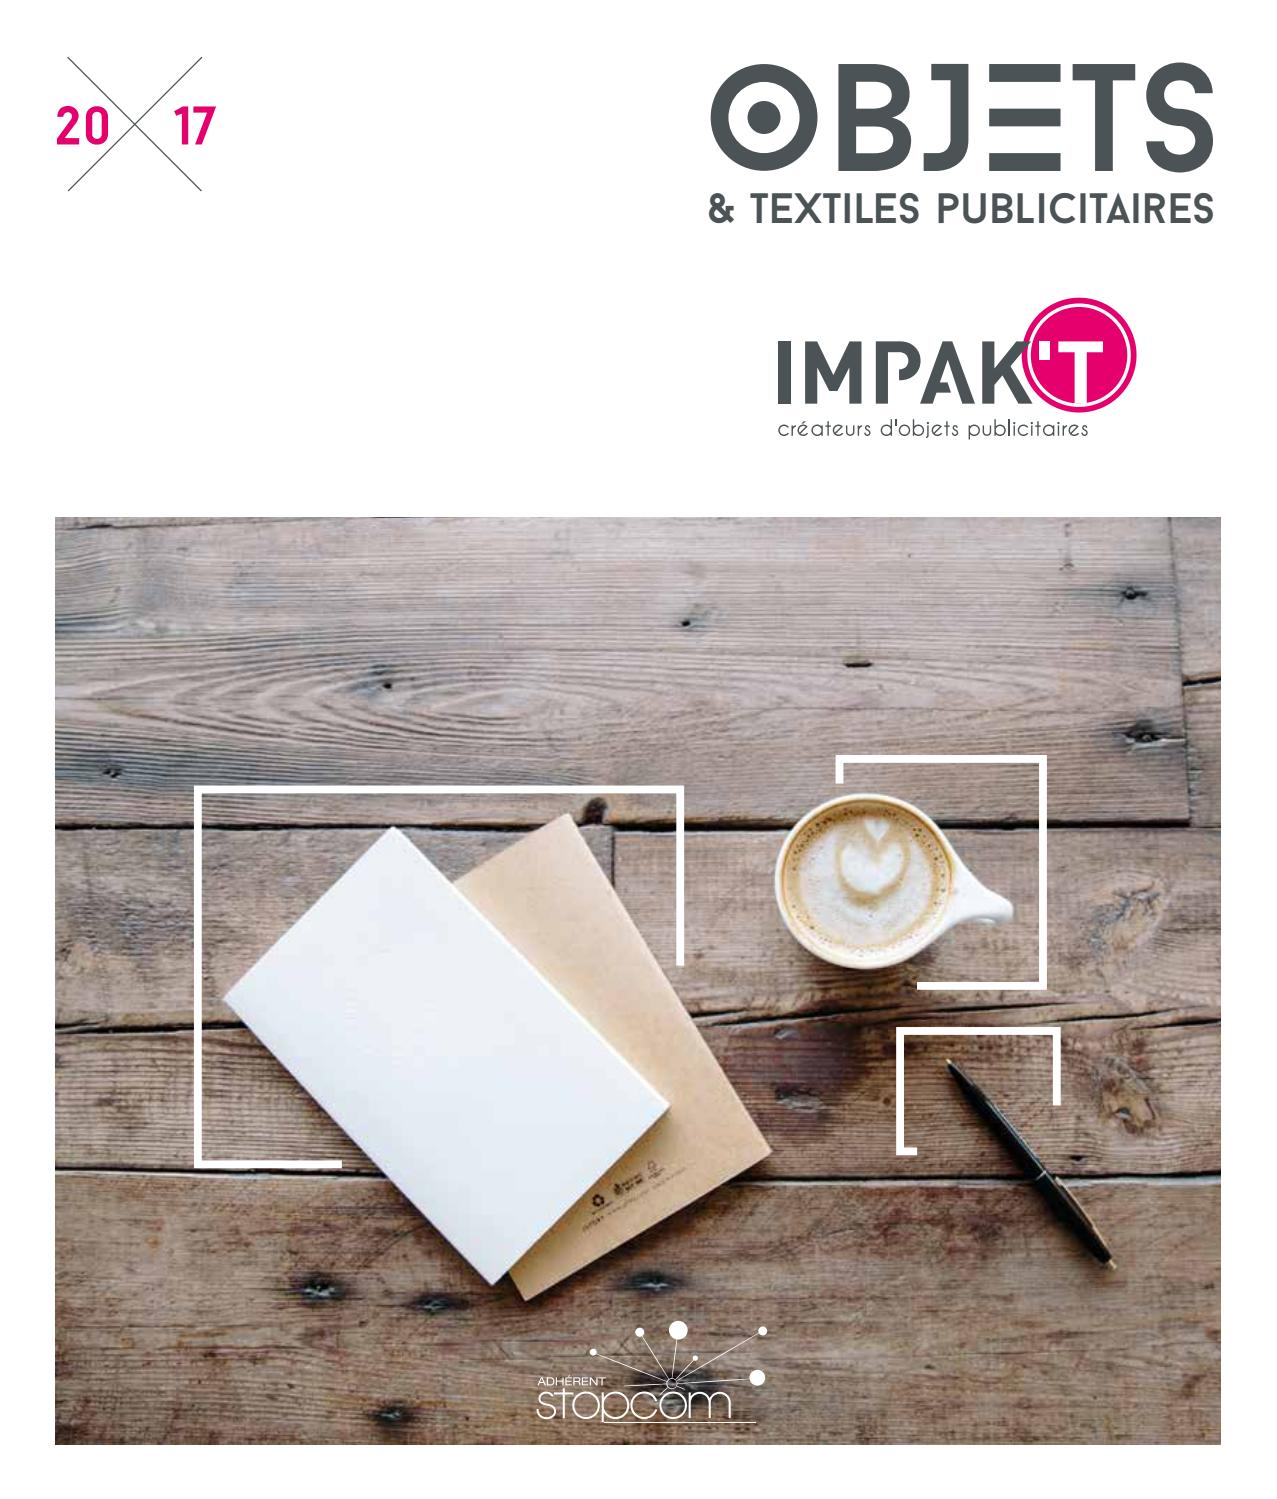 698e6a2aebbdf Impakt catalogue 2017 objets & textiles publicitaires by Objectif Goodies -  issuu